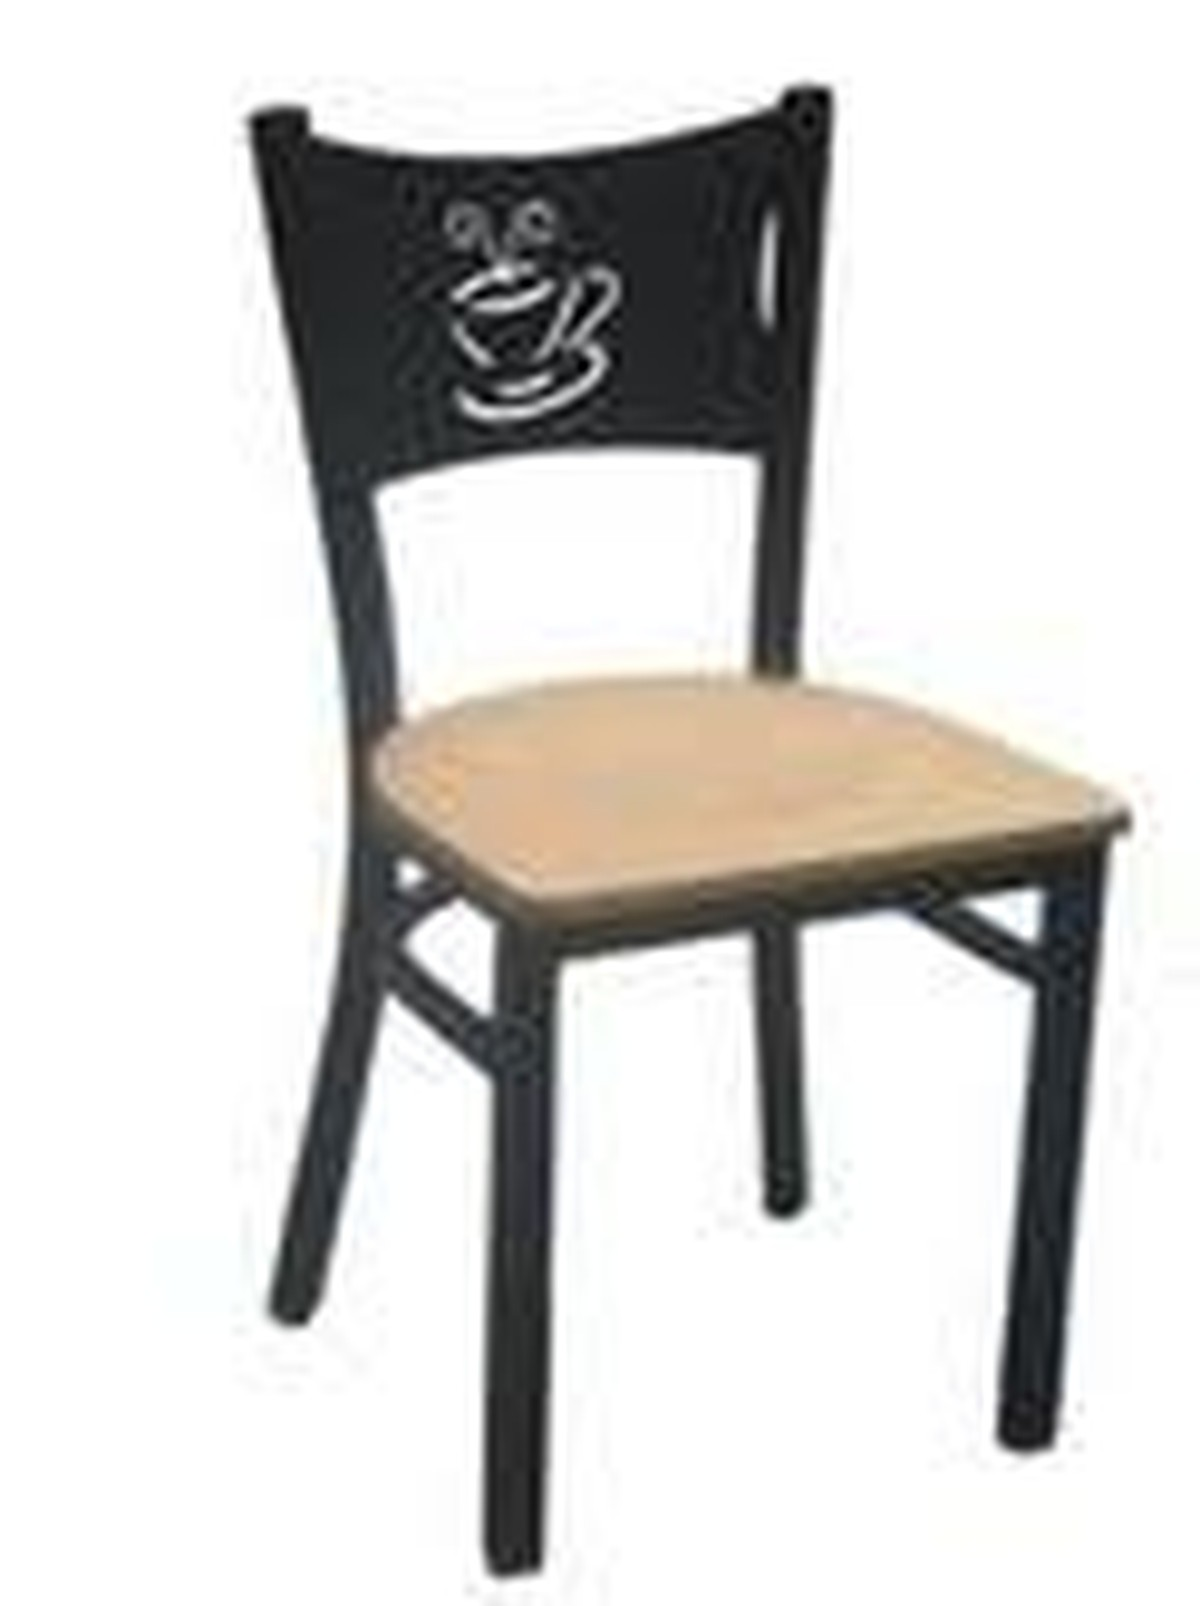 Restaurant Chairs For Sale Secondhand Chairs And Tables Restaurant Chairs 20x